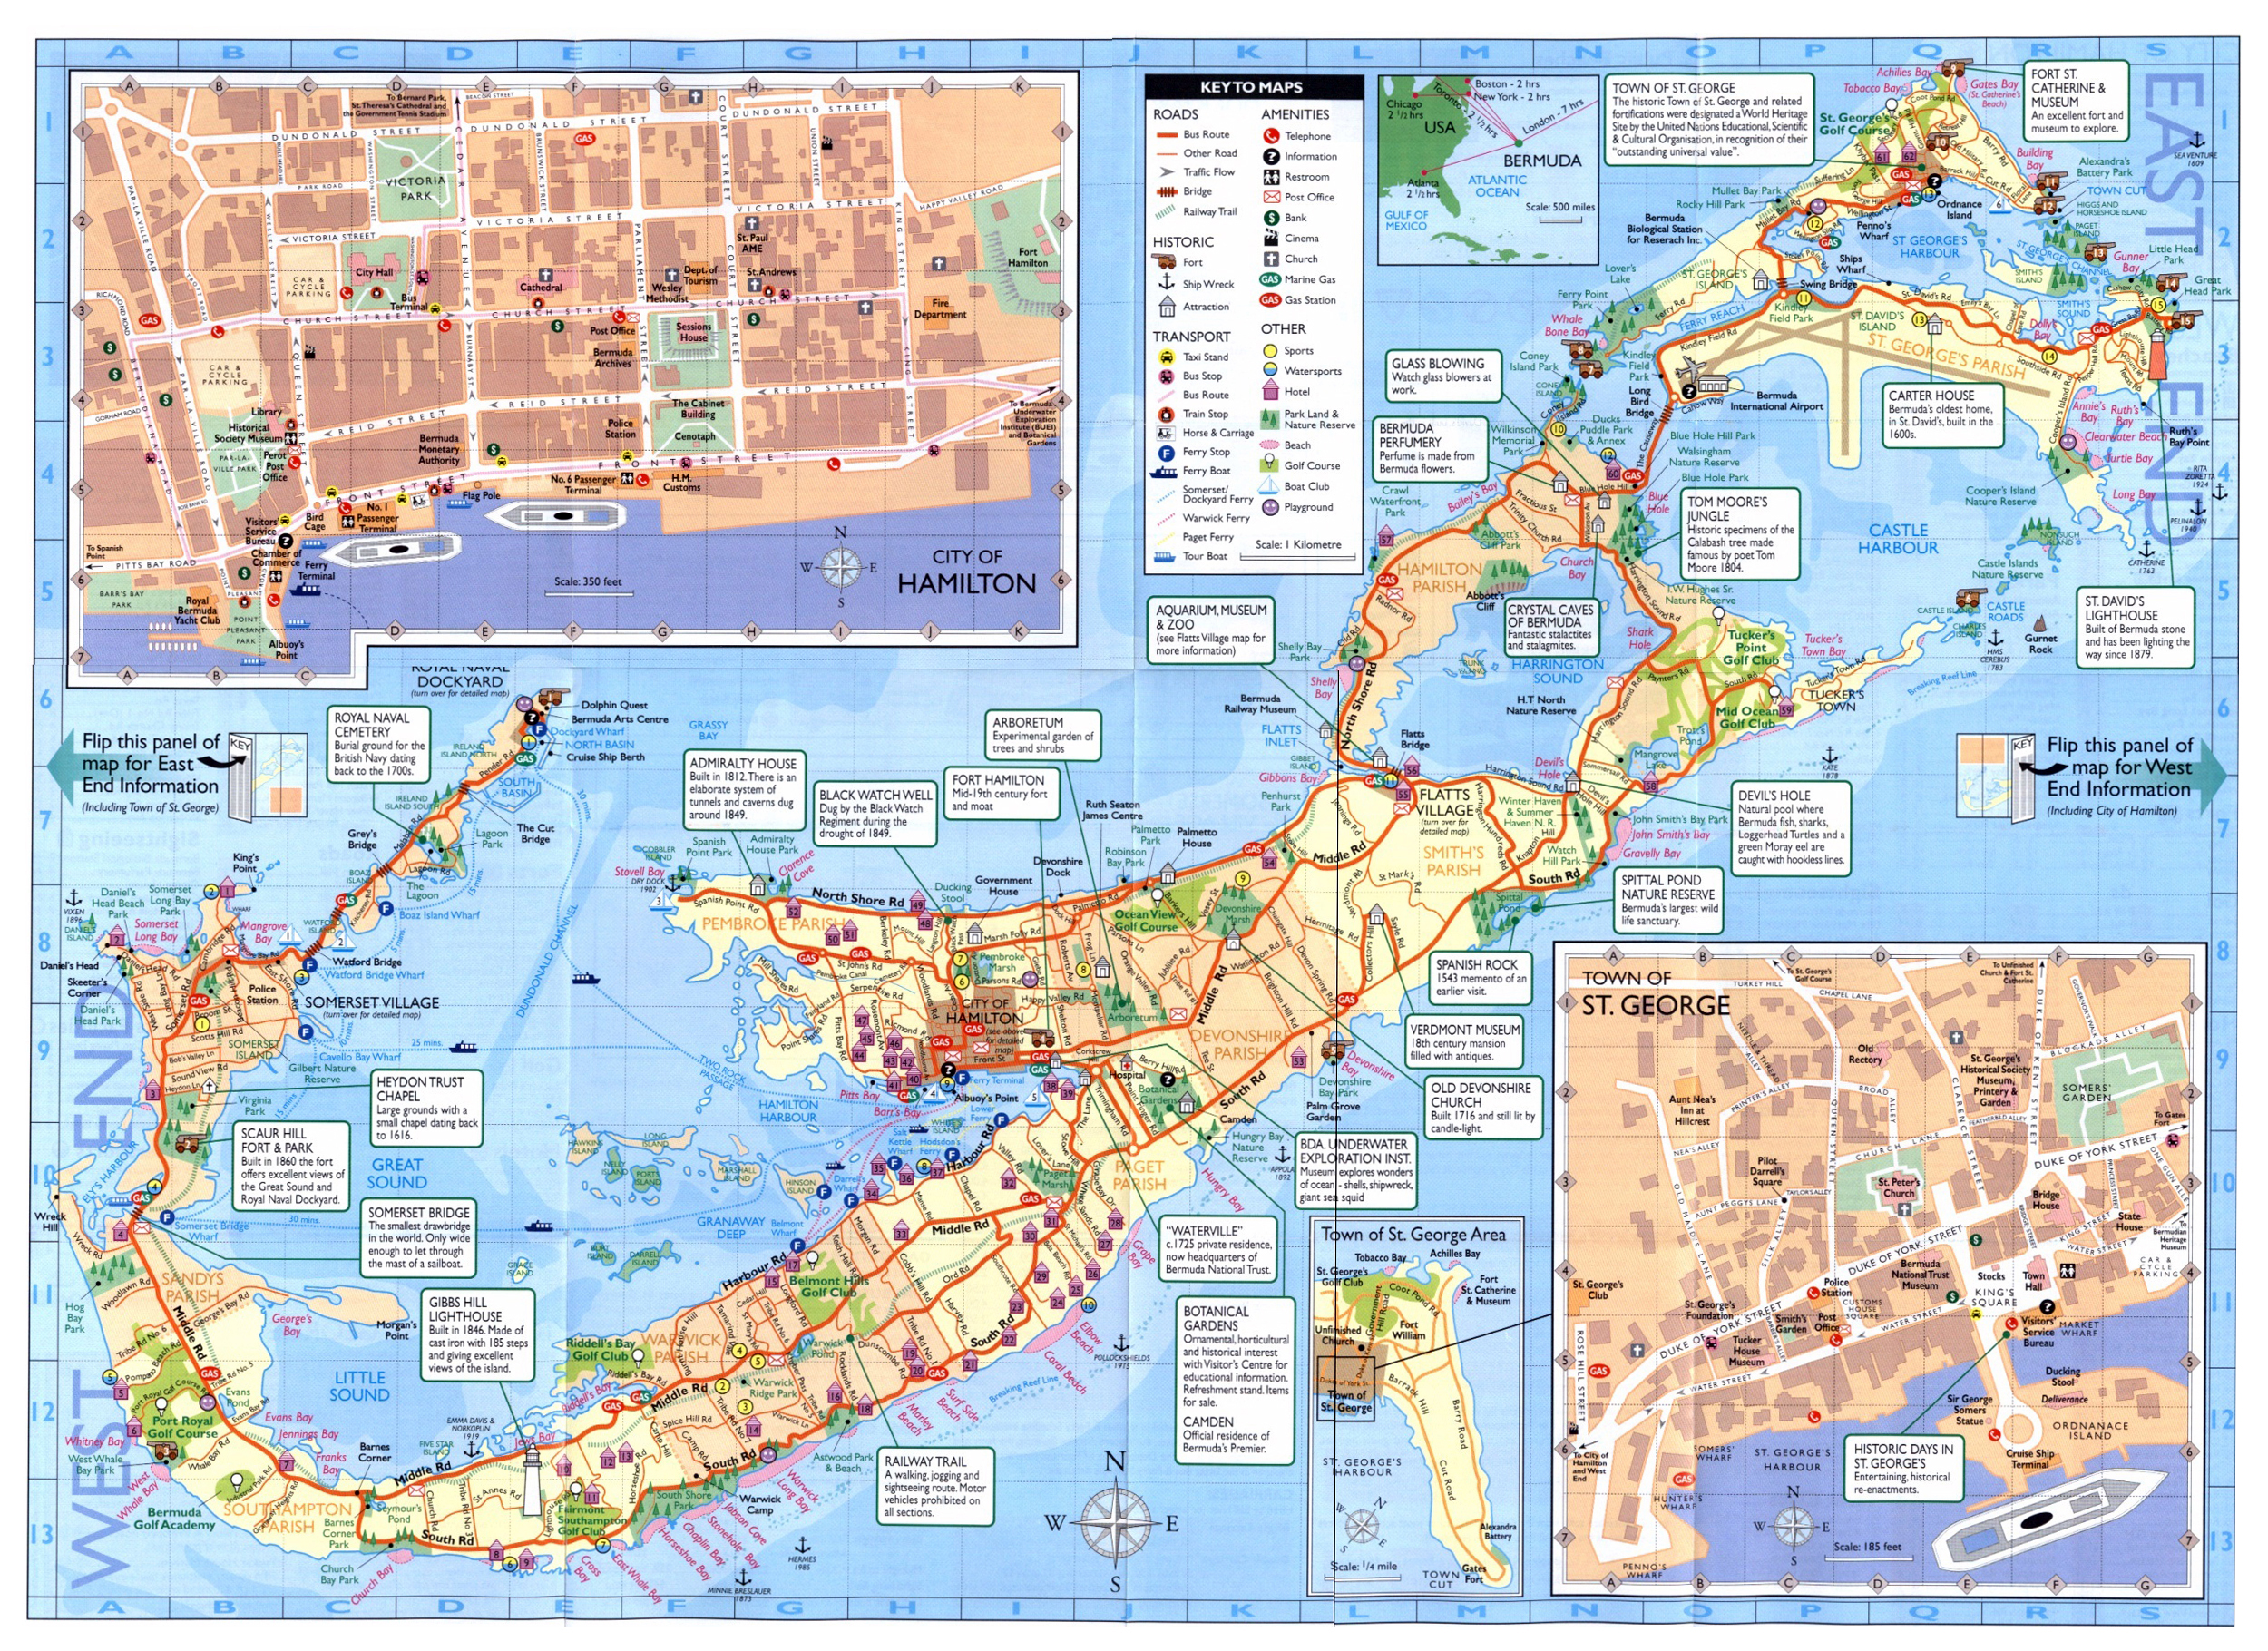 Large road and tourist map of Bermuda | Bermuda | North America ...